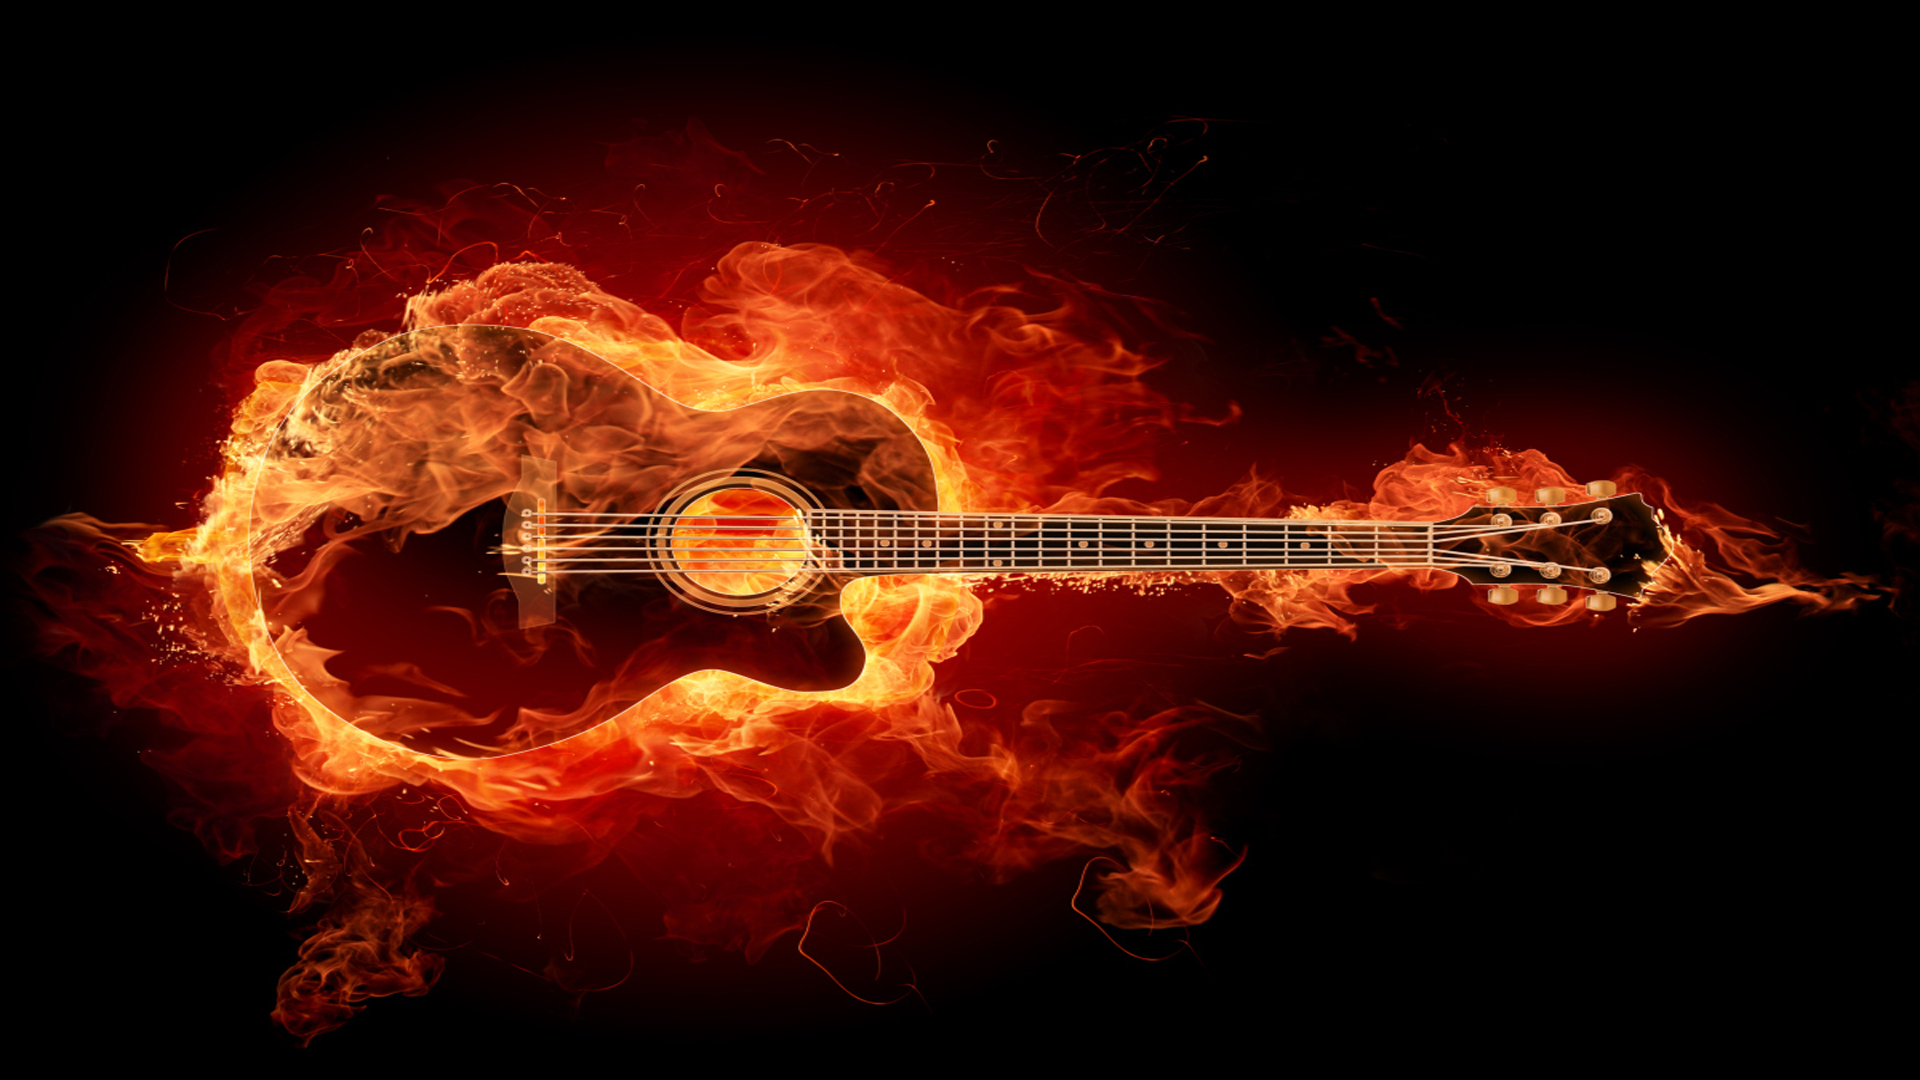 Burning Love Hd Wallpapers: Guitar Full HD Wallpaper And Background Image